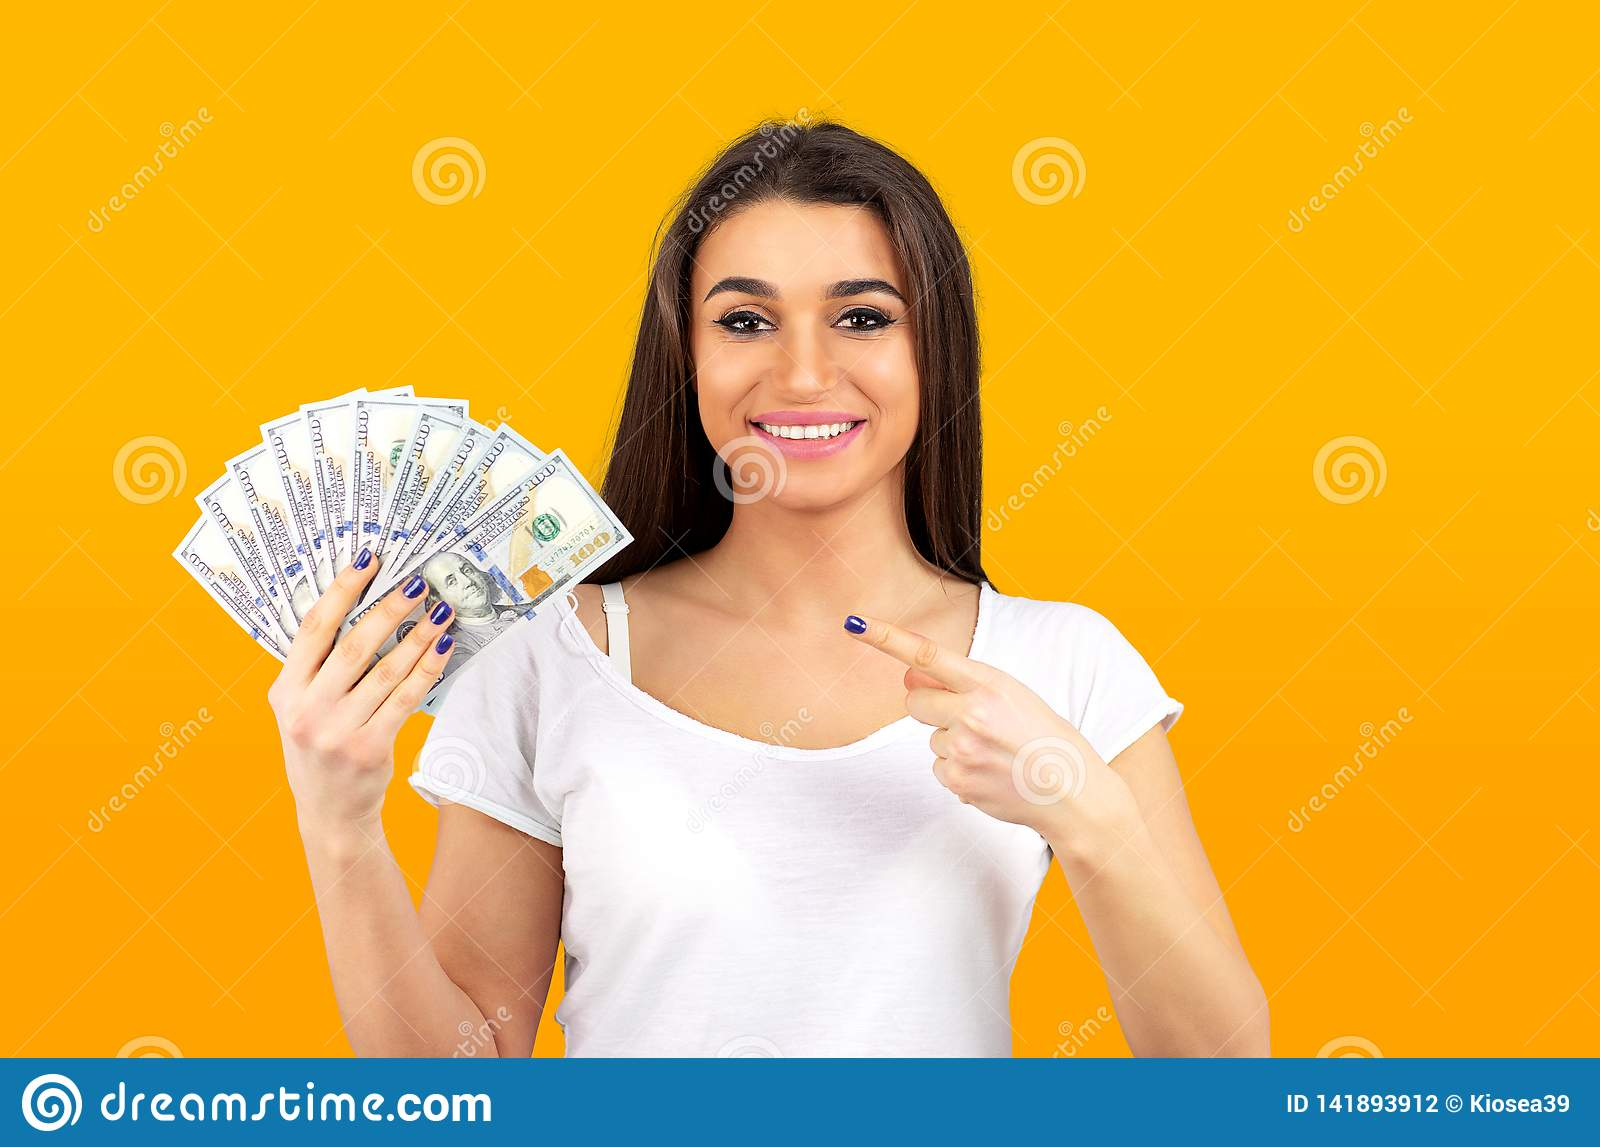 Woman feeling super happy holding fan of dollar money